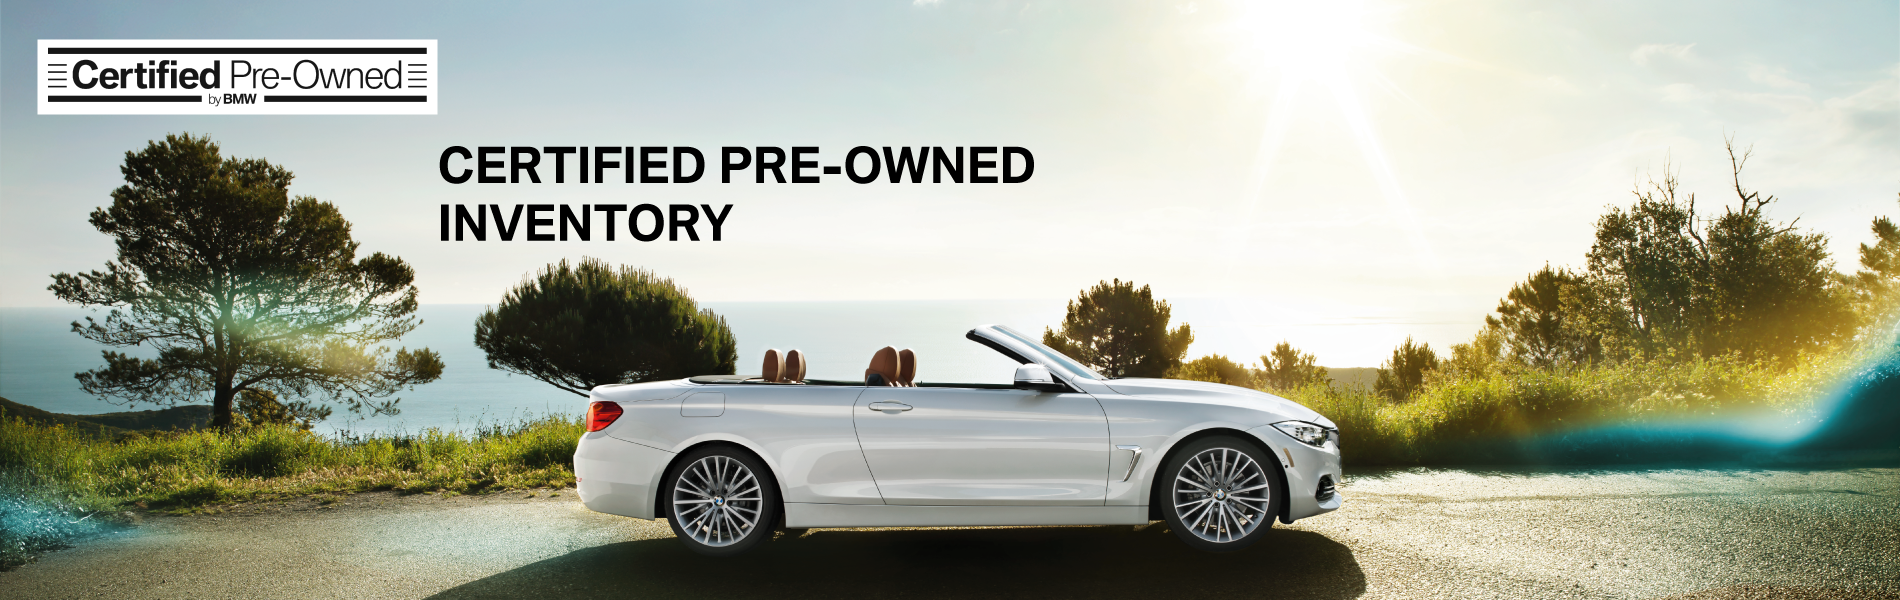 BMW Certified Pre-Owned Inventory